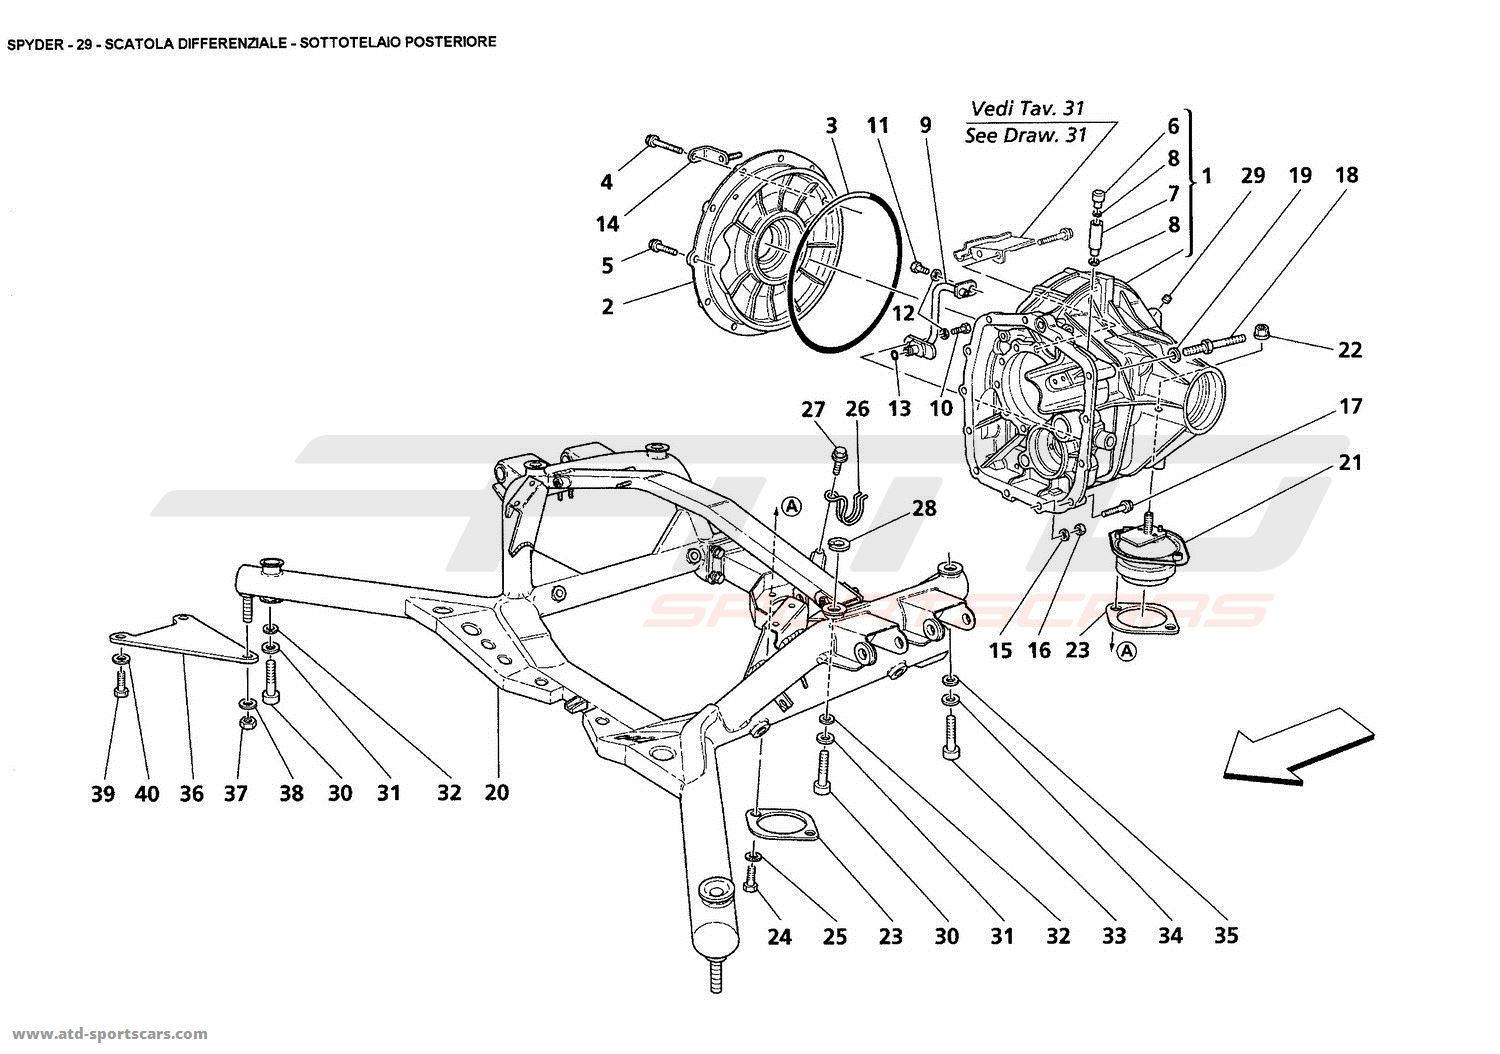 Ferrari 360 Modena Wiring Diagram on drag race fuel system diagram